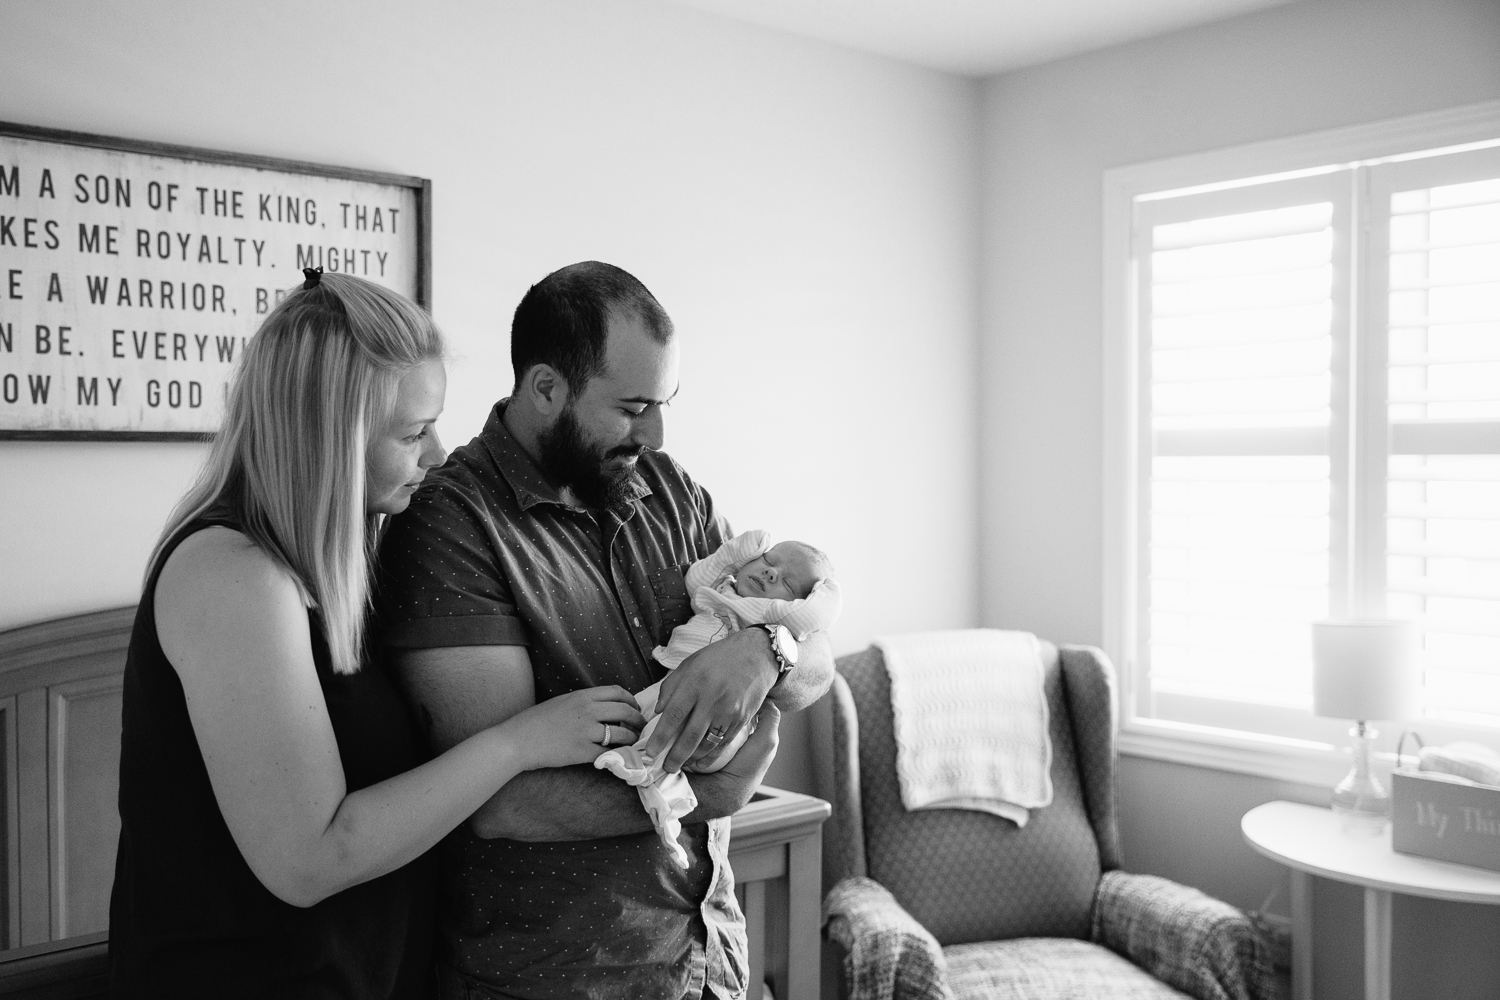 first time parents standing in nursery, dad holding sleeping 2 week old baby son - Barrie In-Home Photography